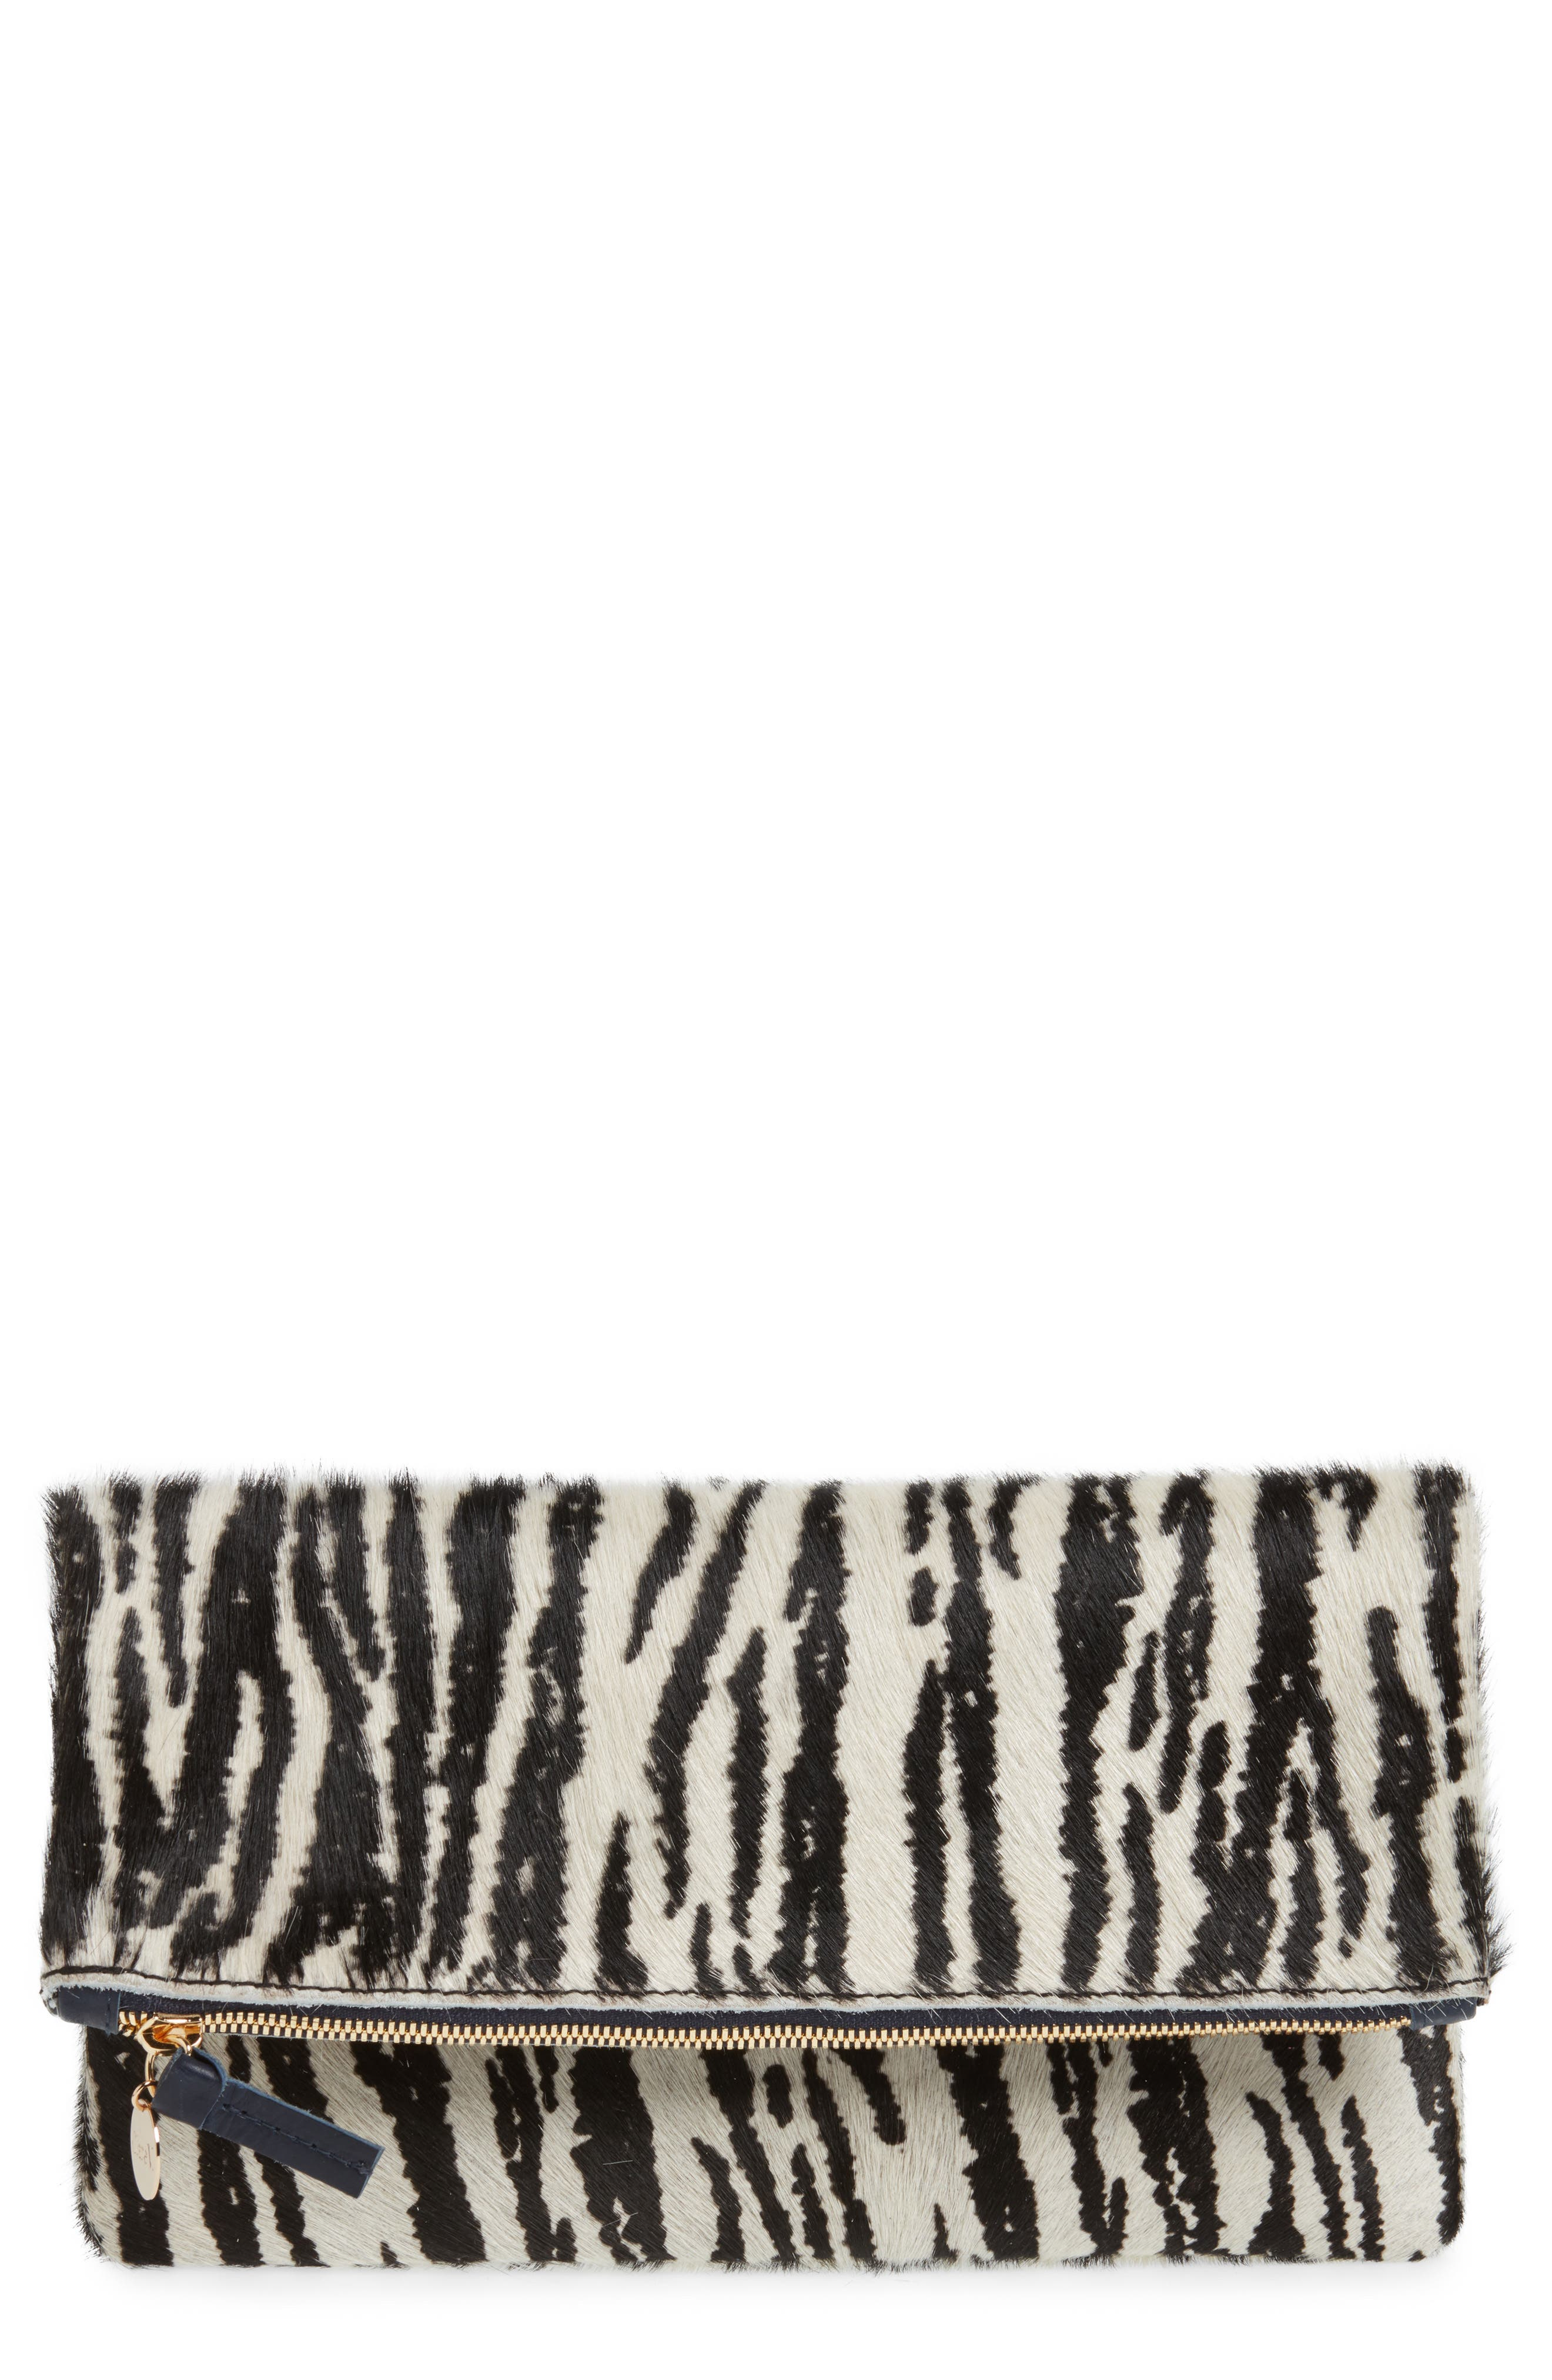 Zebra Print Genuine Calf Hair Foldover Clutch,                             Main thumbnail 1, color,                             Zebra Hair On